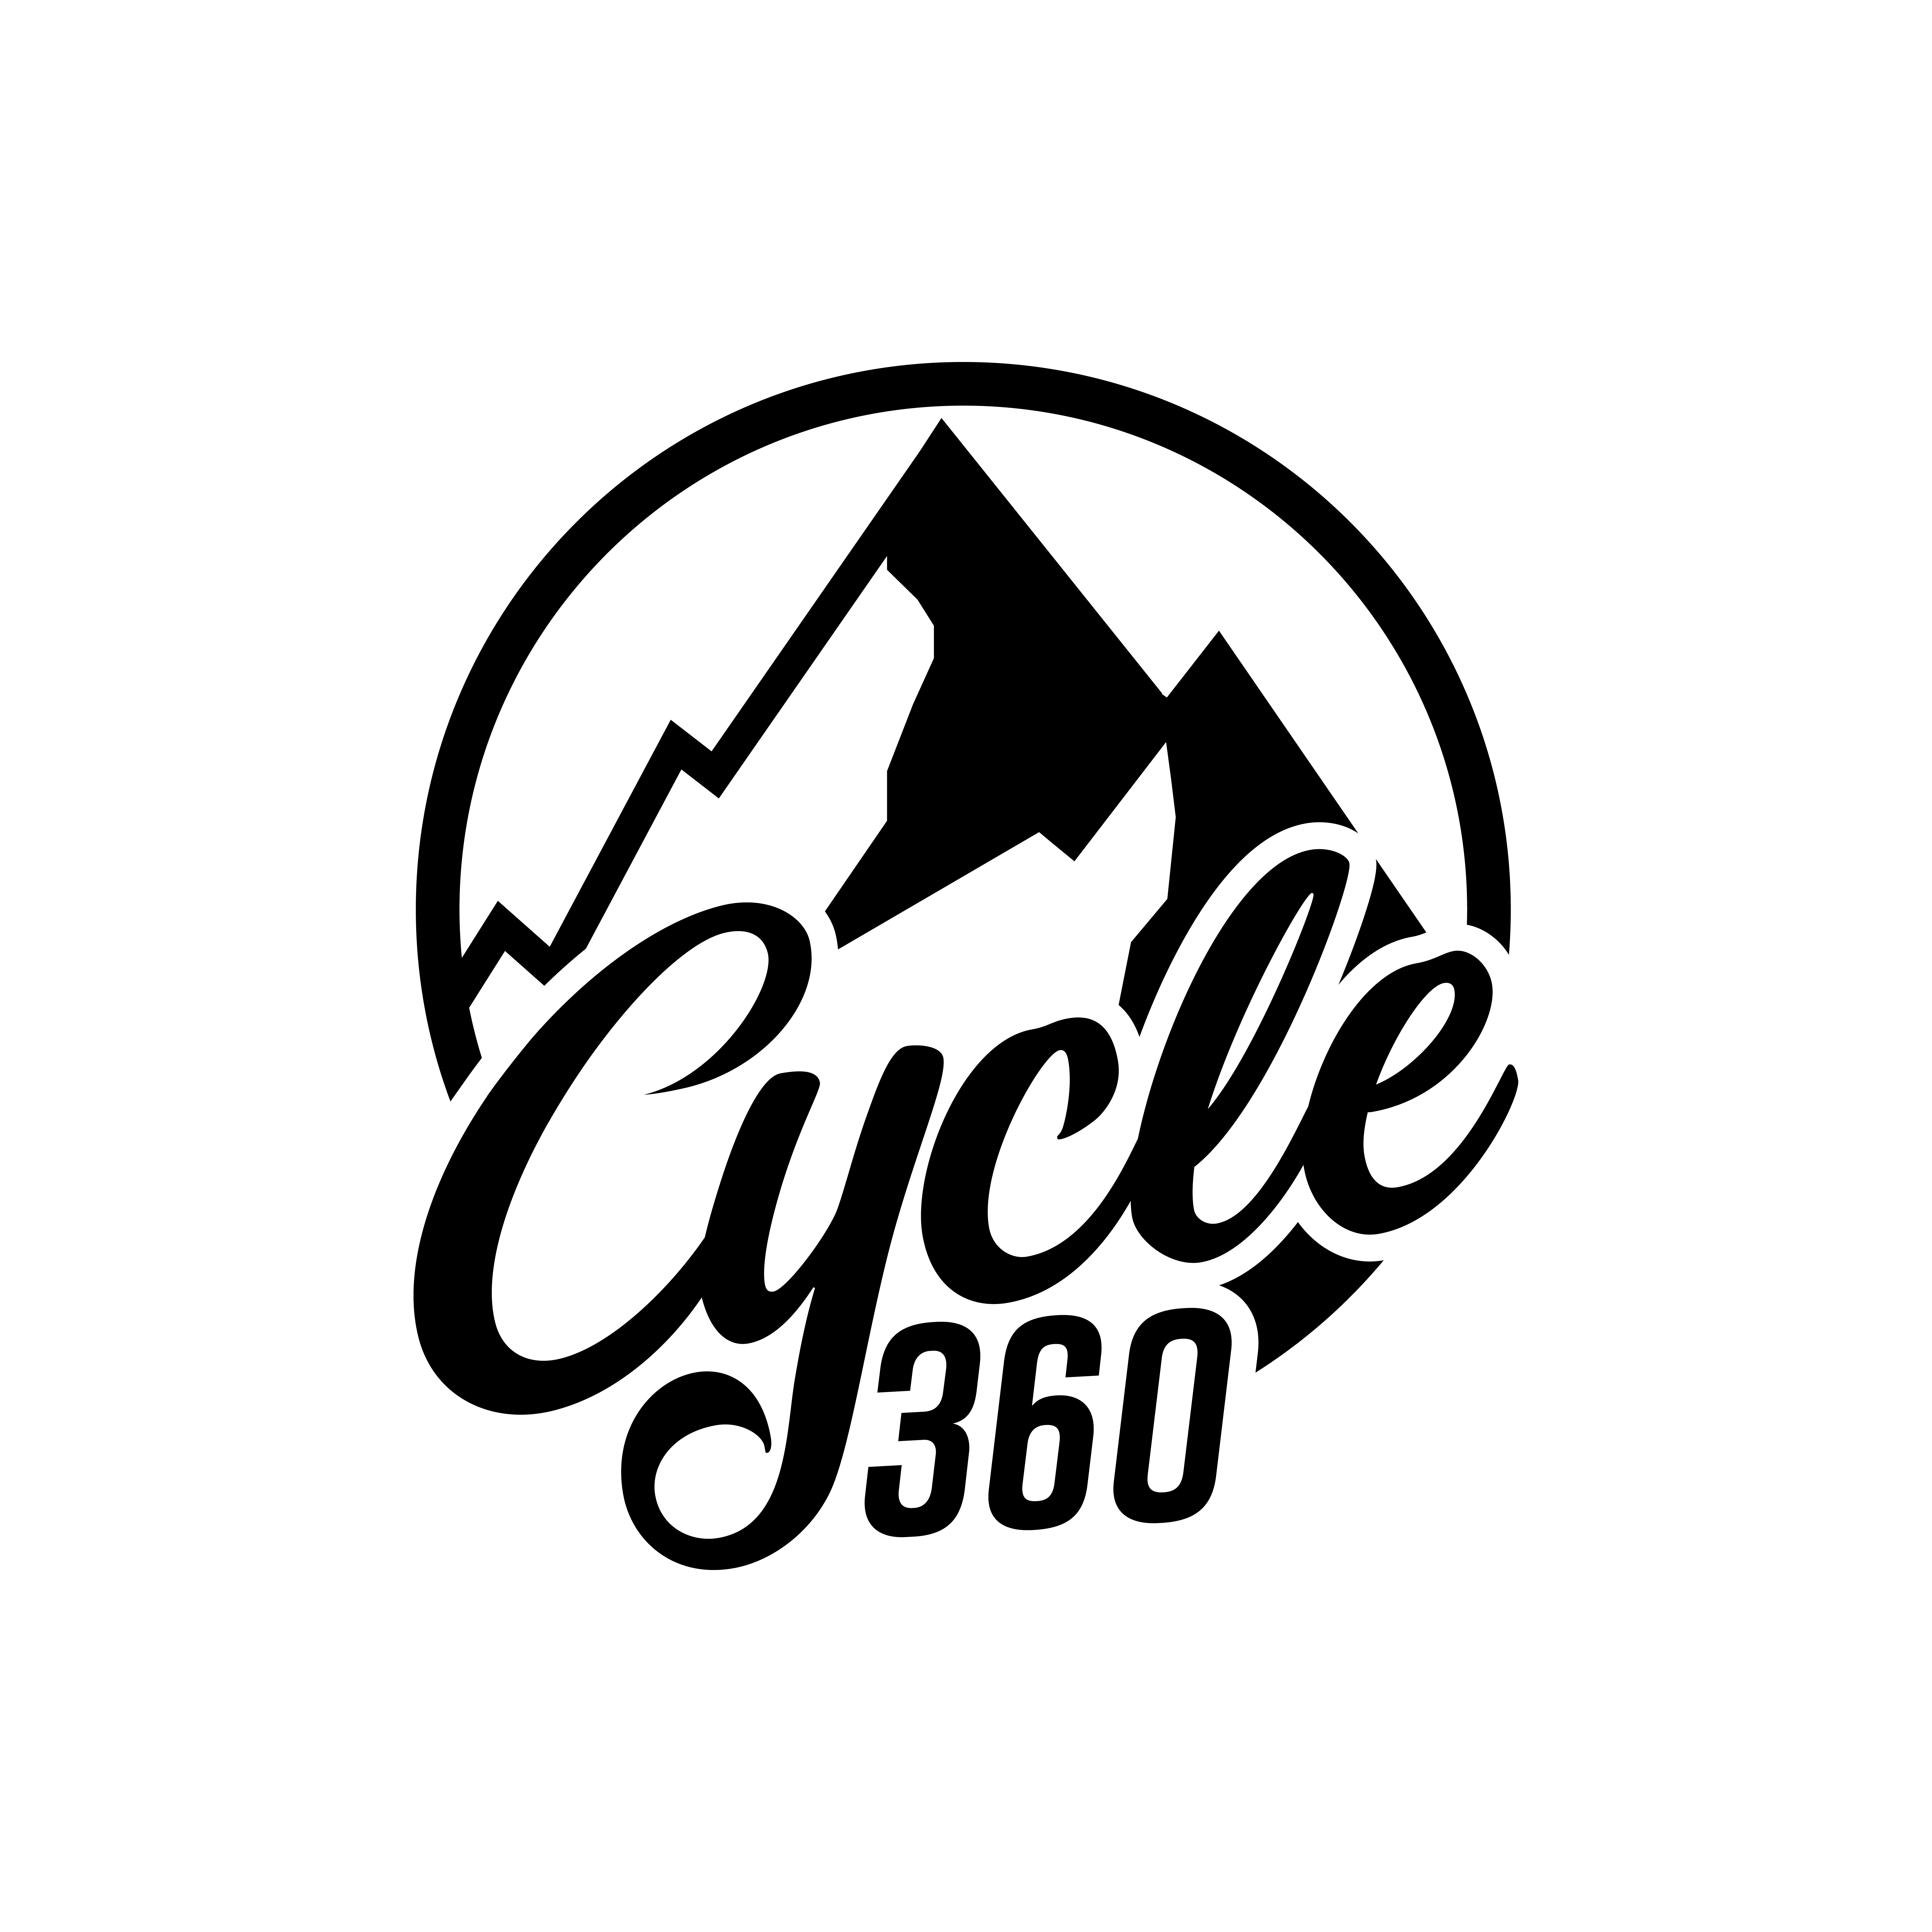 Cycle 360 logo